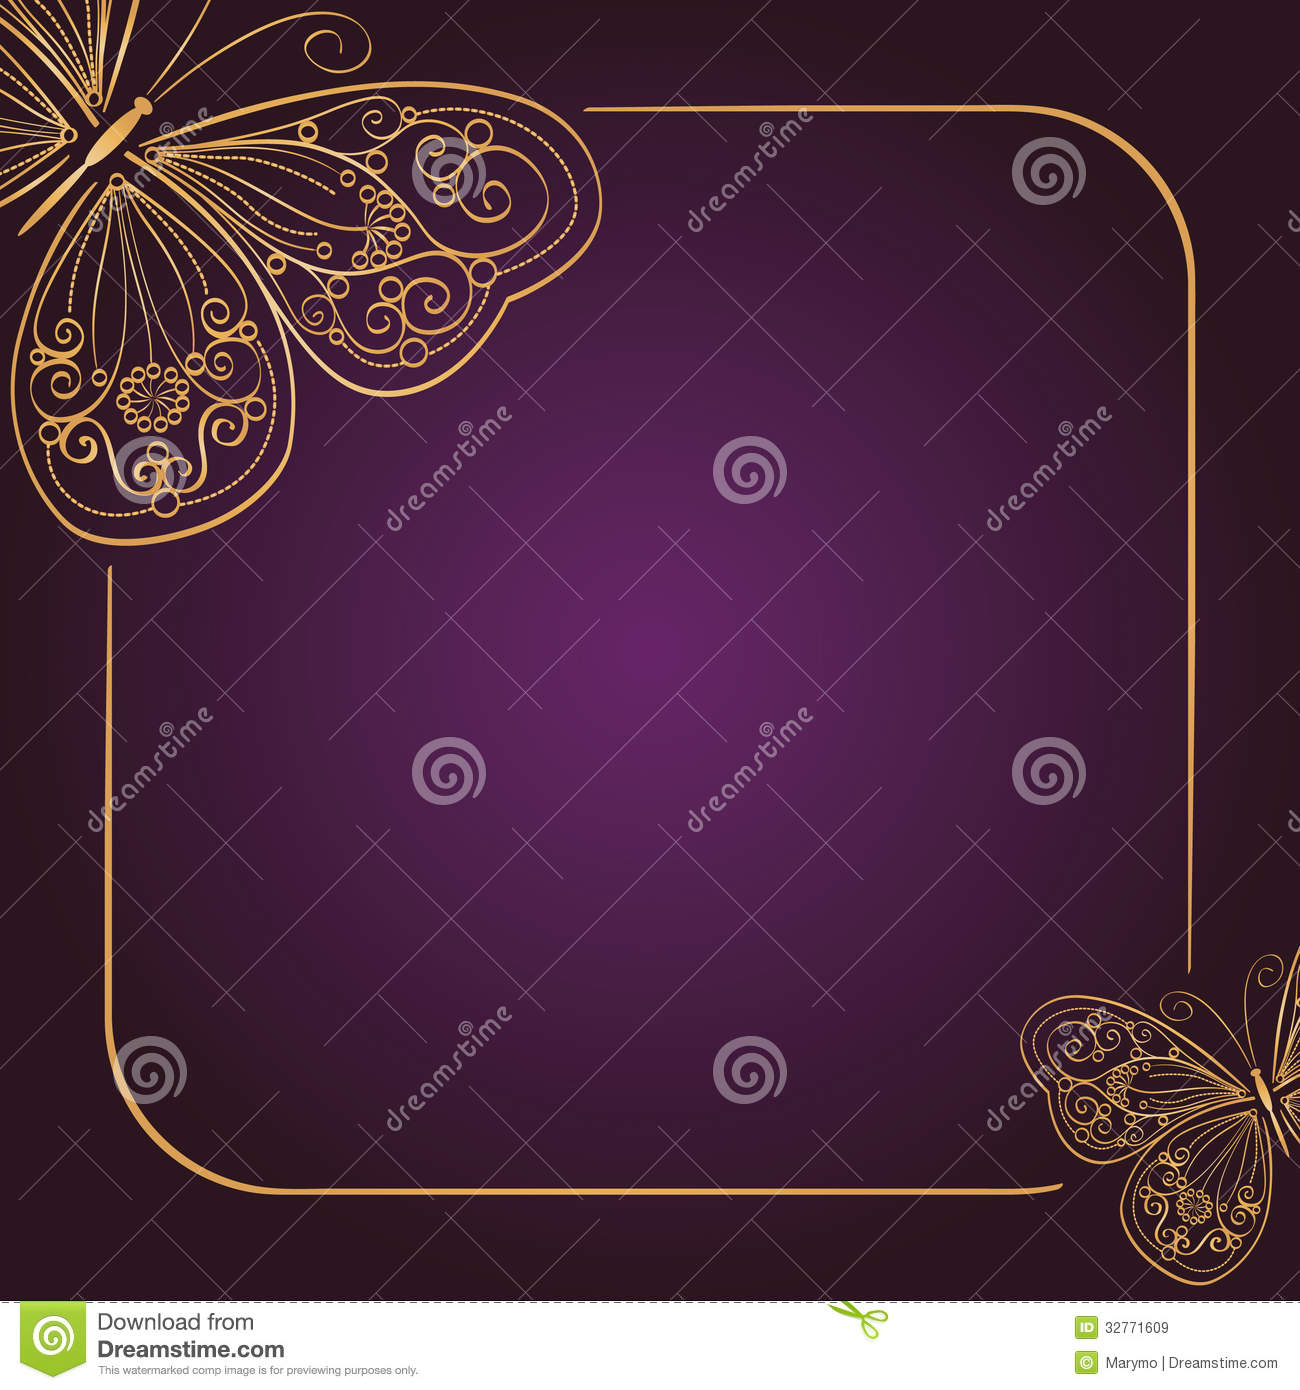 Black And Purple Wedding Invitations as awesome invitation layout